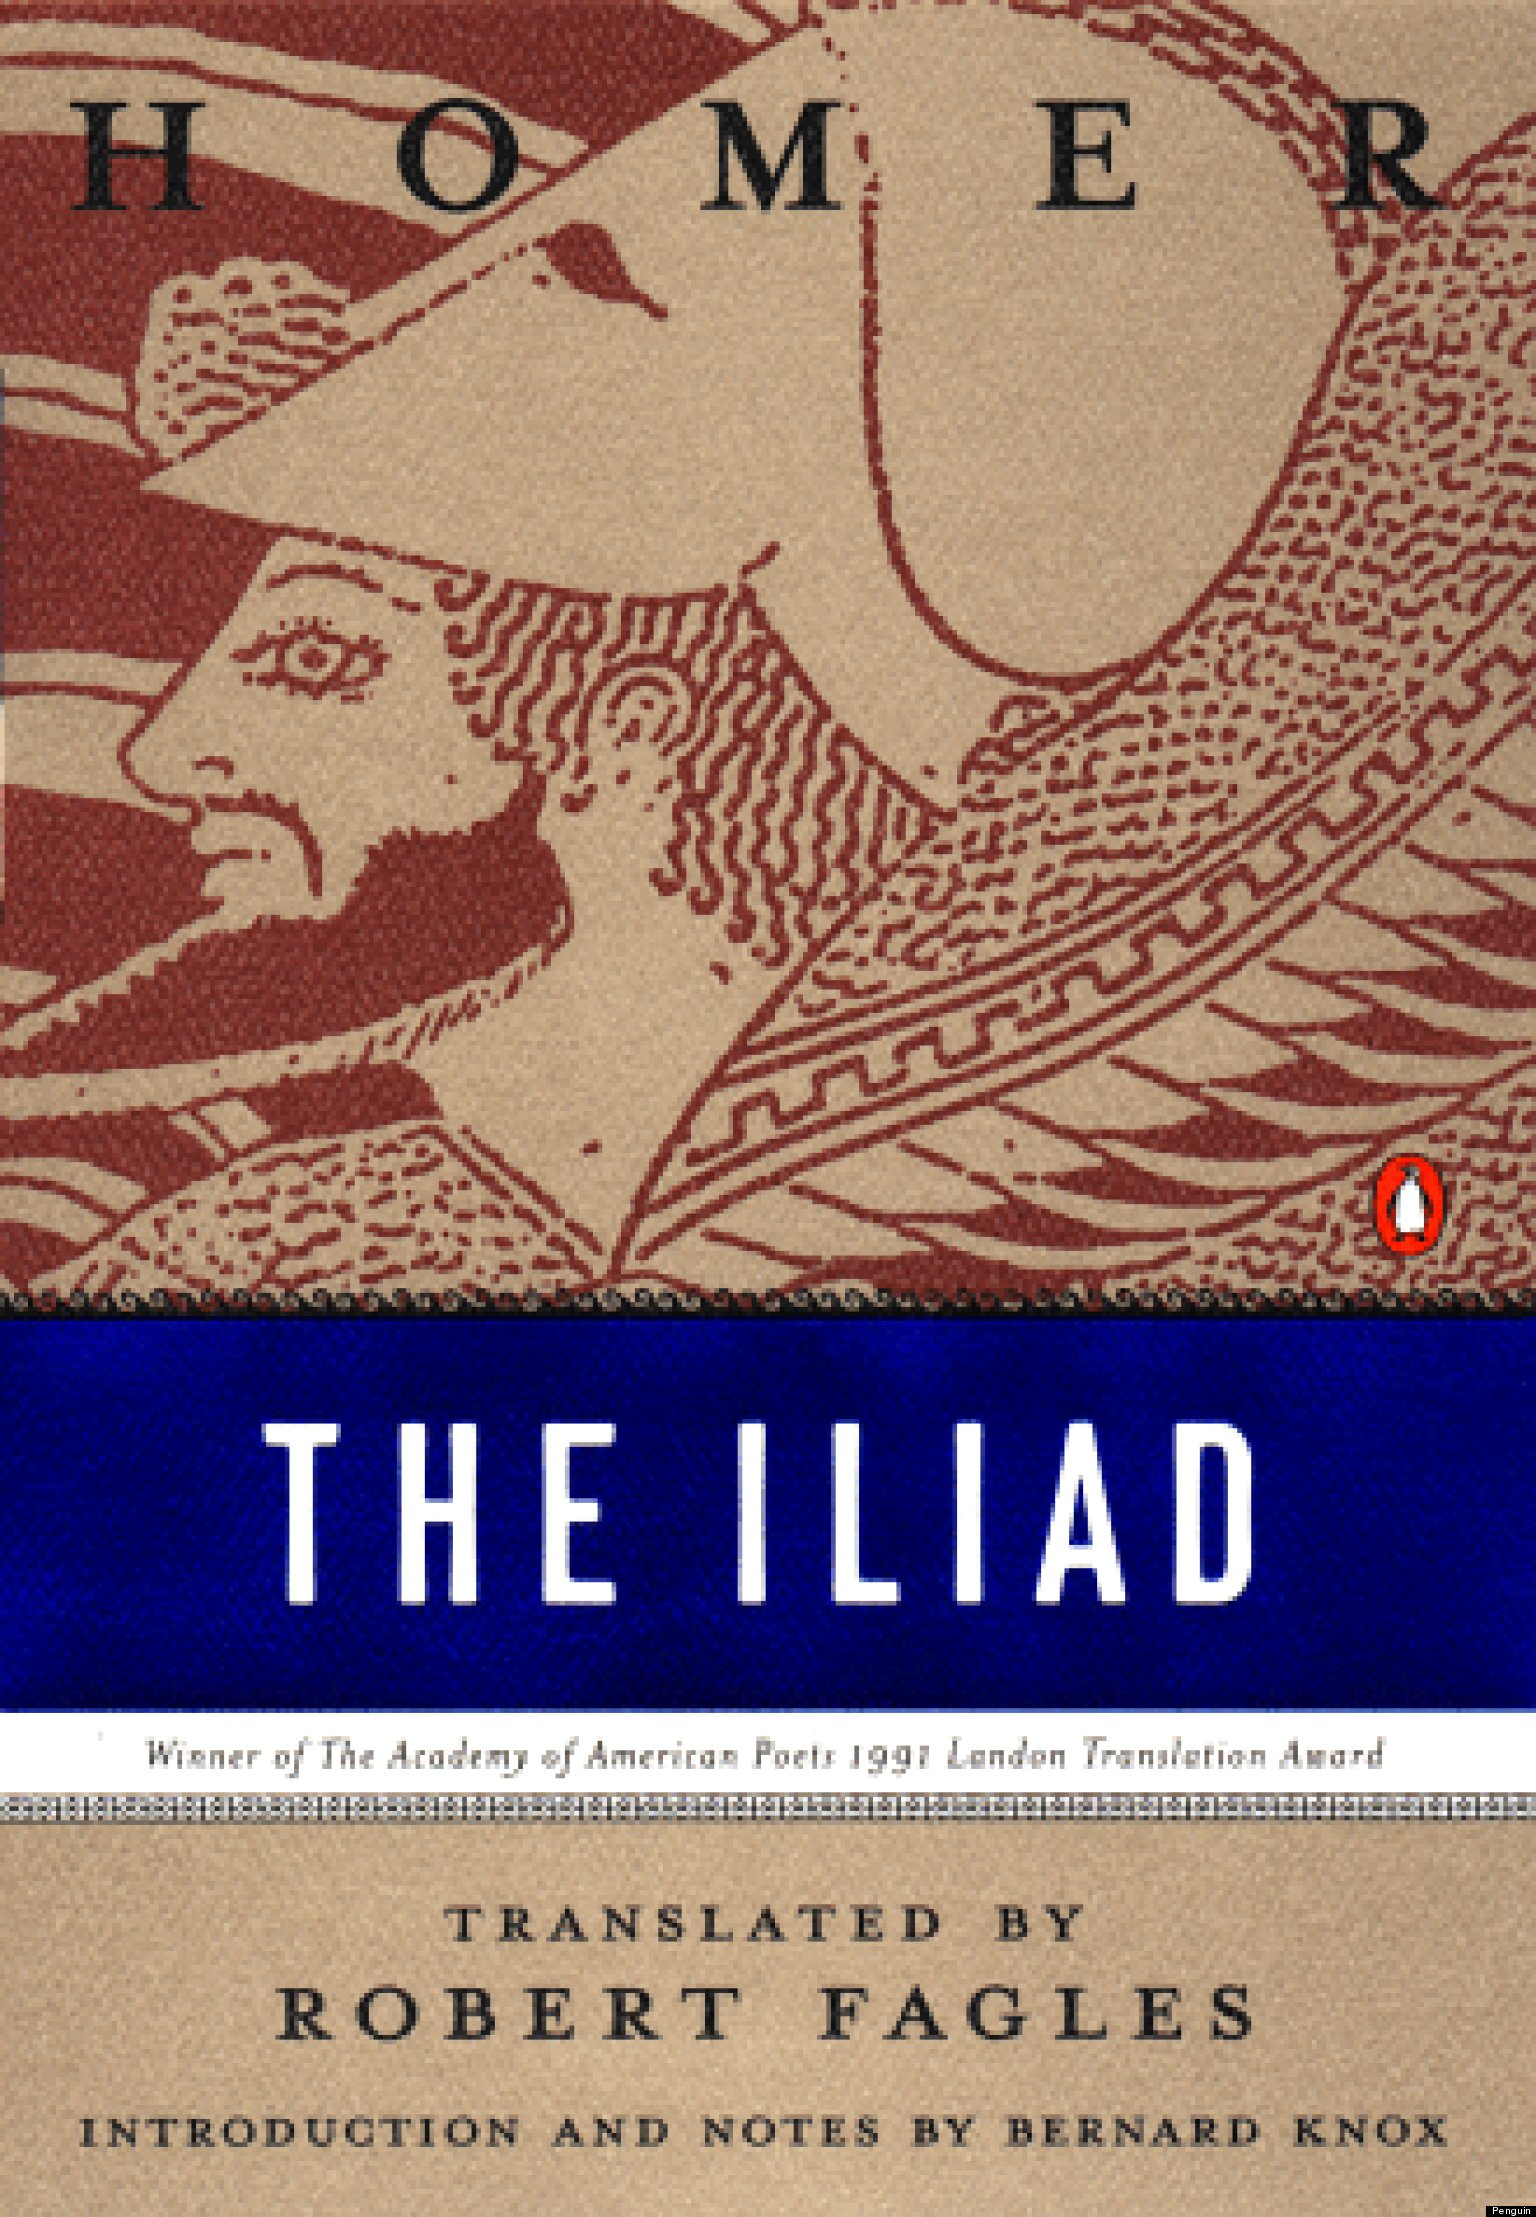 the illiad and odyssey The iliad and the odyssey blend events from greek history, mythology, and culture that reveal the unique worldview of this ancient civilization they are full of morals about human emotions, and.